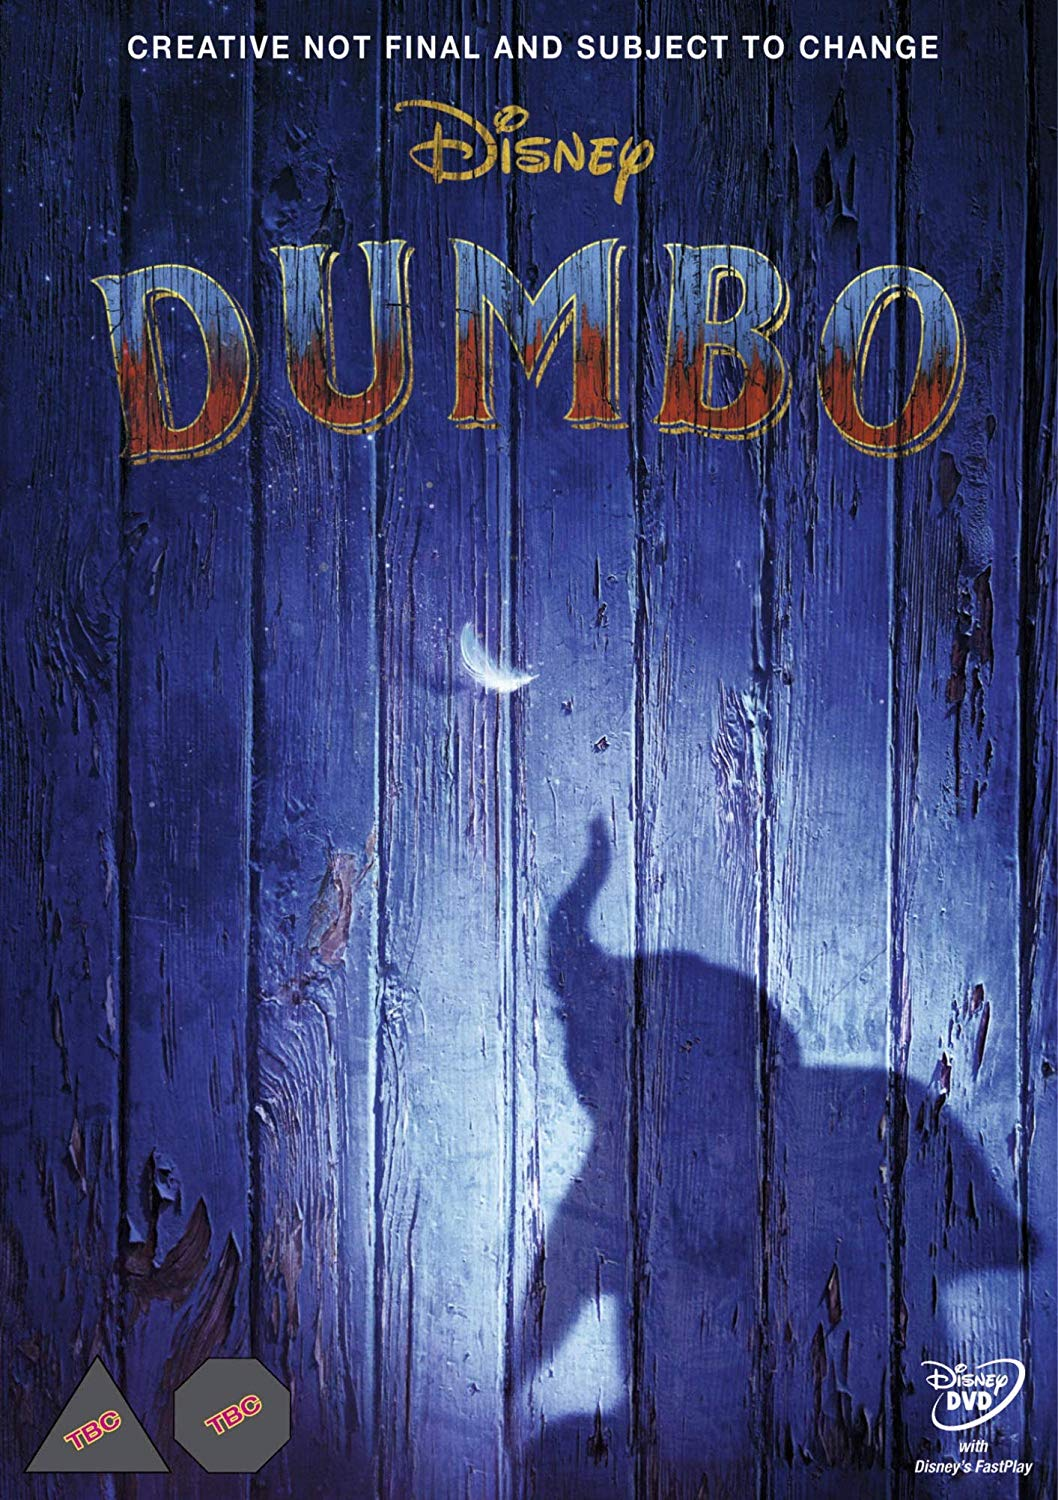 Dumbo - Tim Burton [DVD] OUT 26.07.19 PRE-ORDER NOW